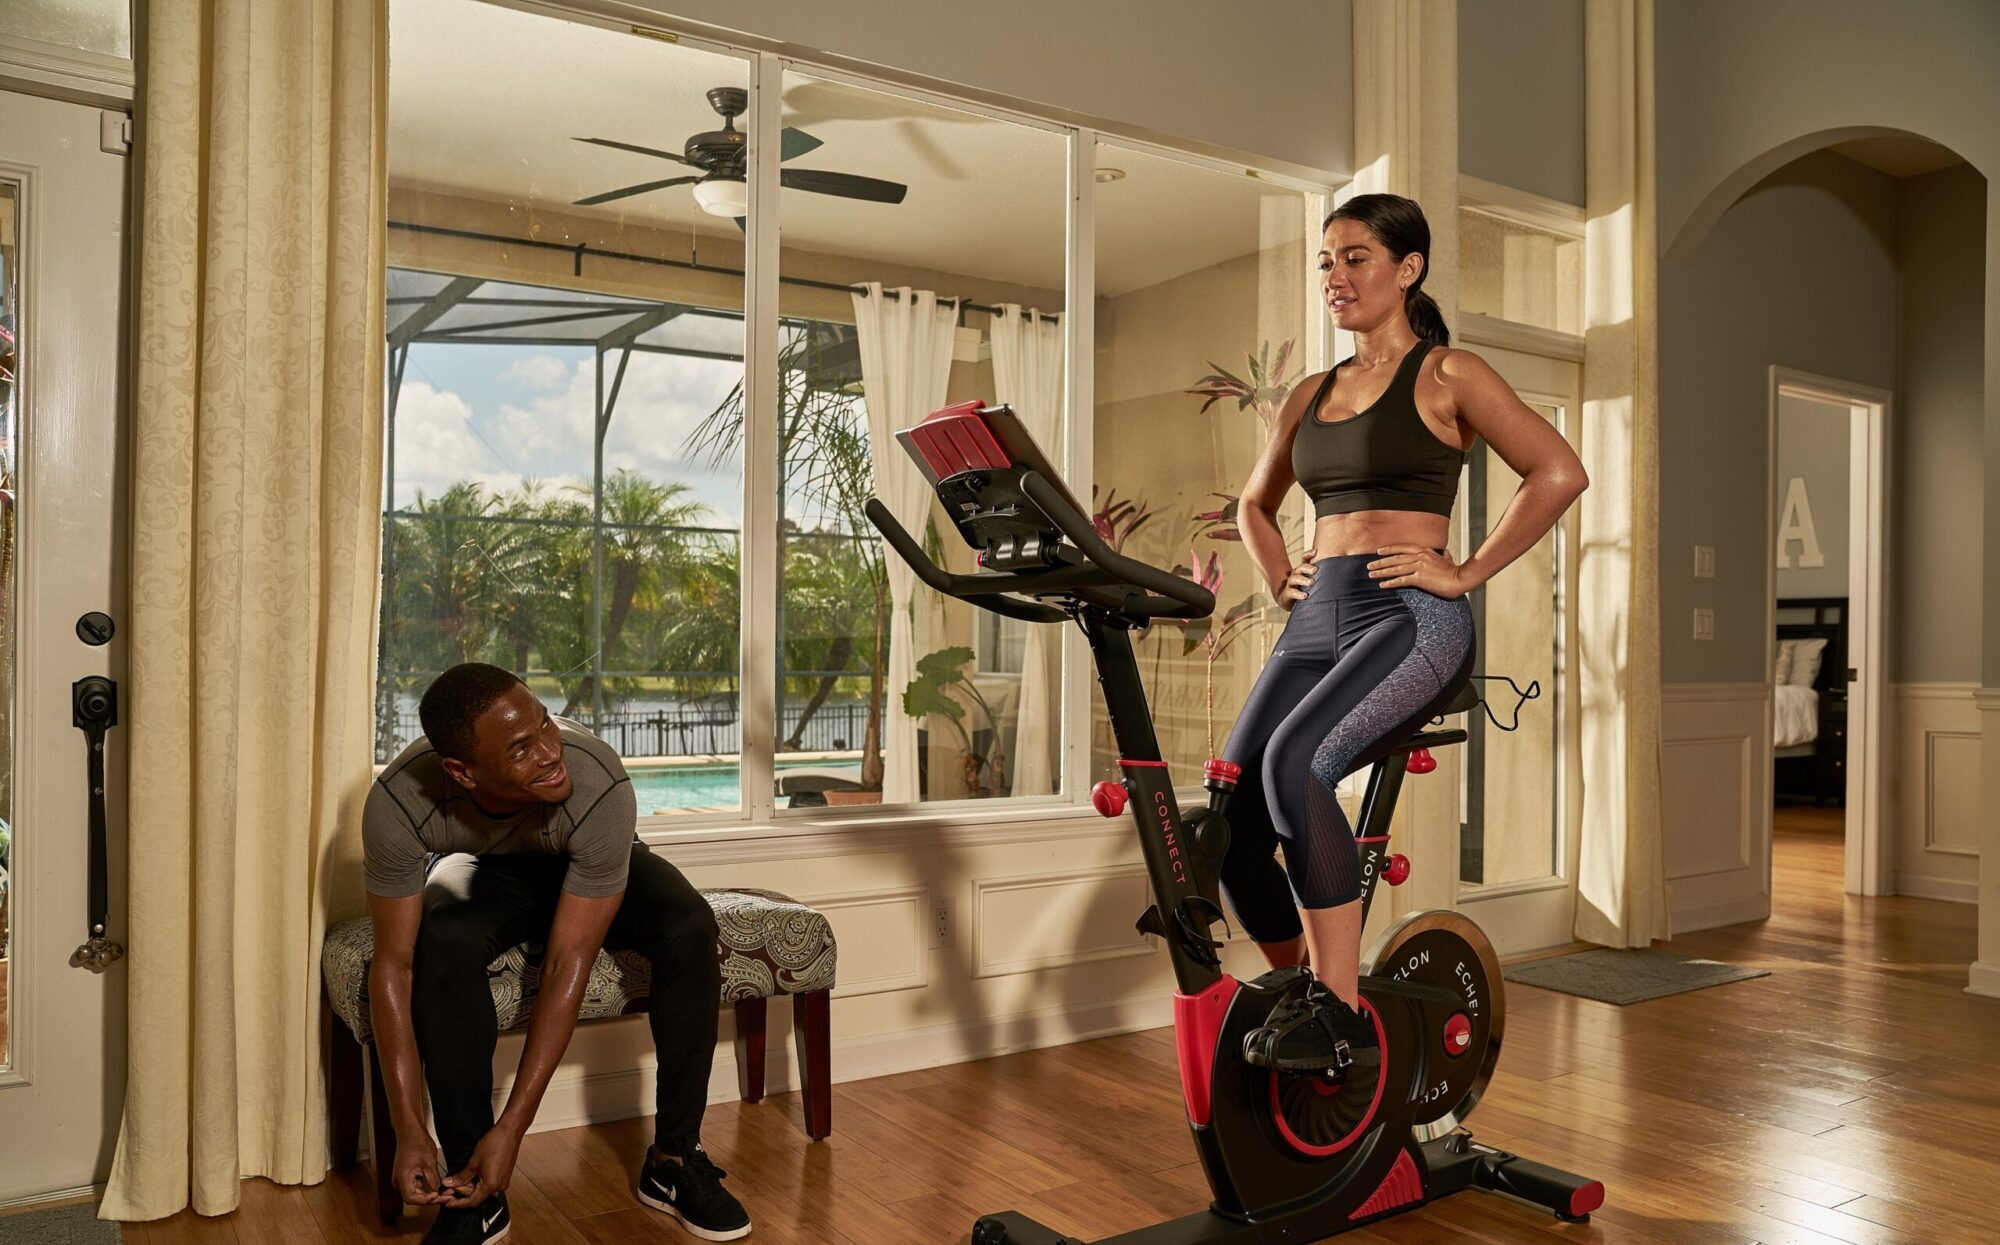 Home workouts are here to stay post-Covid